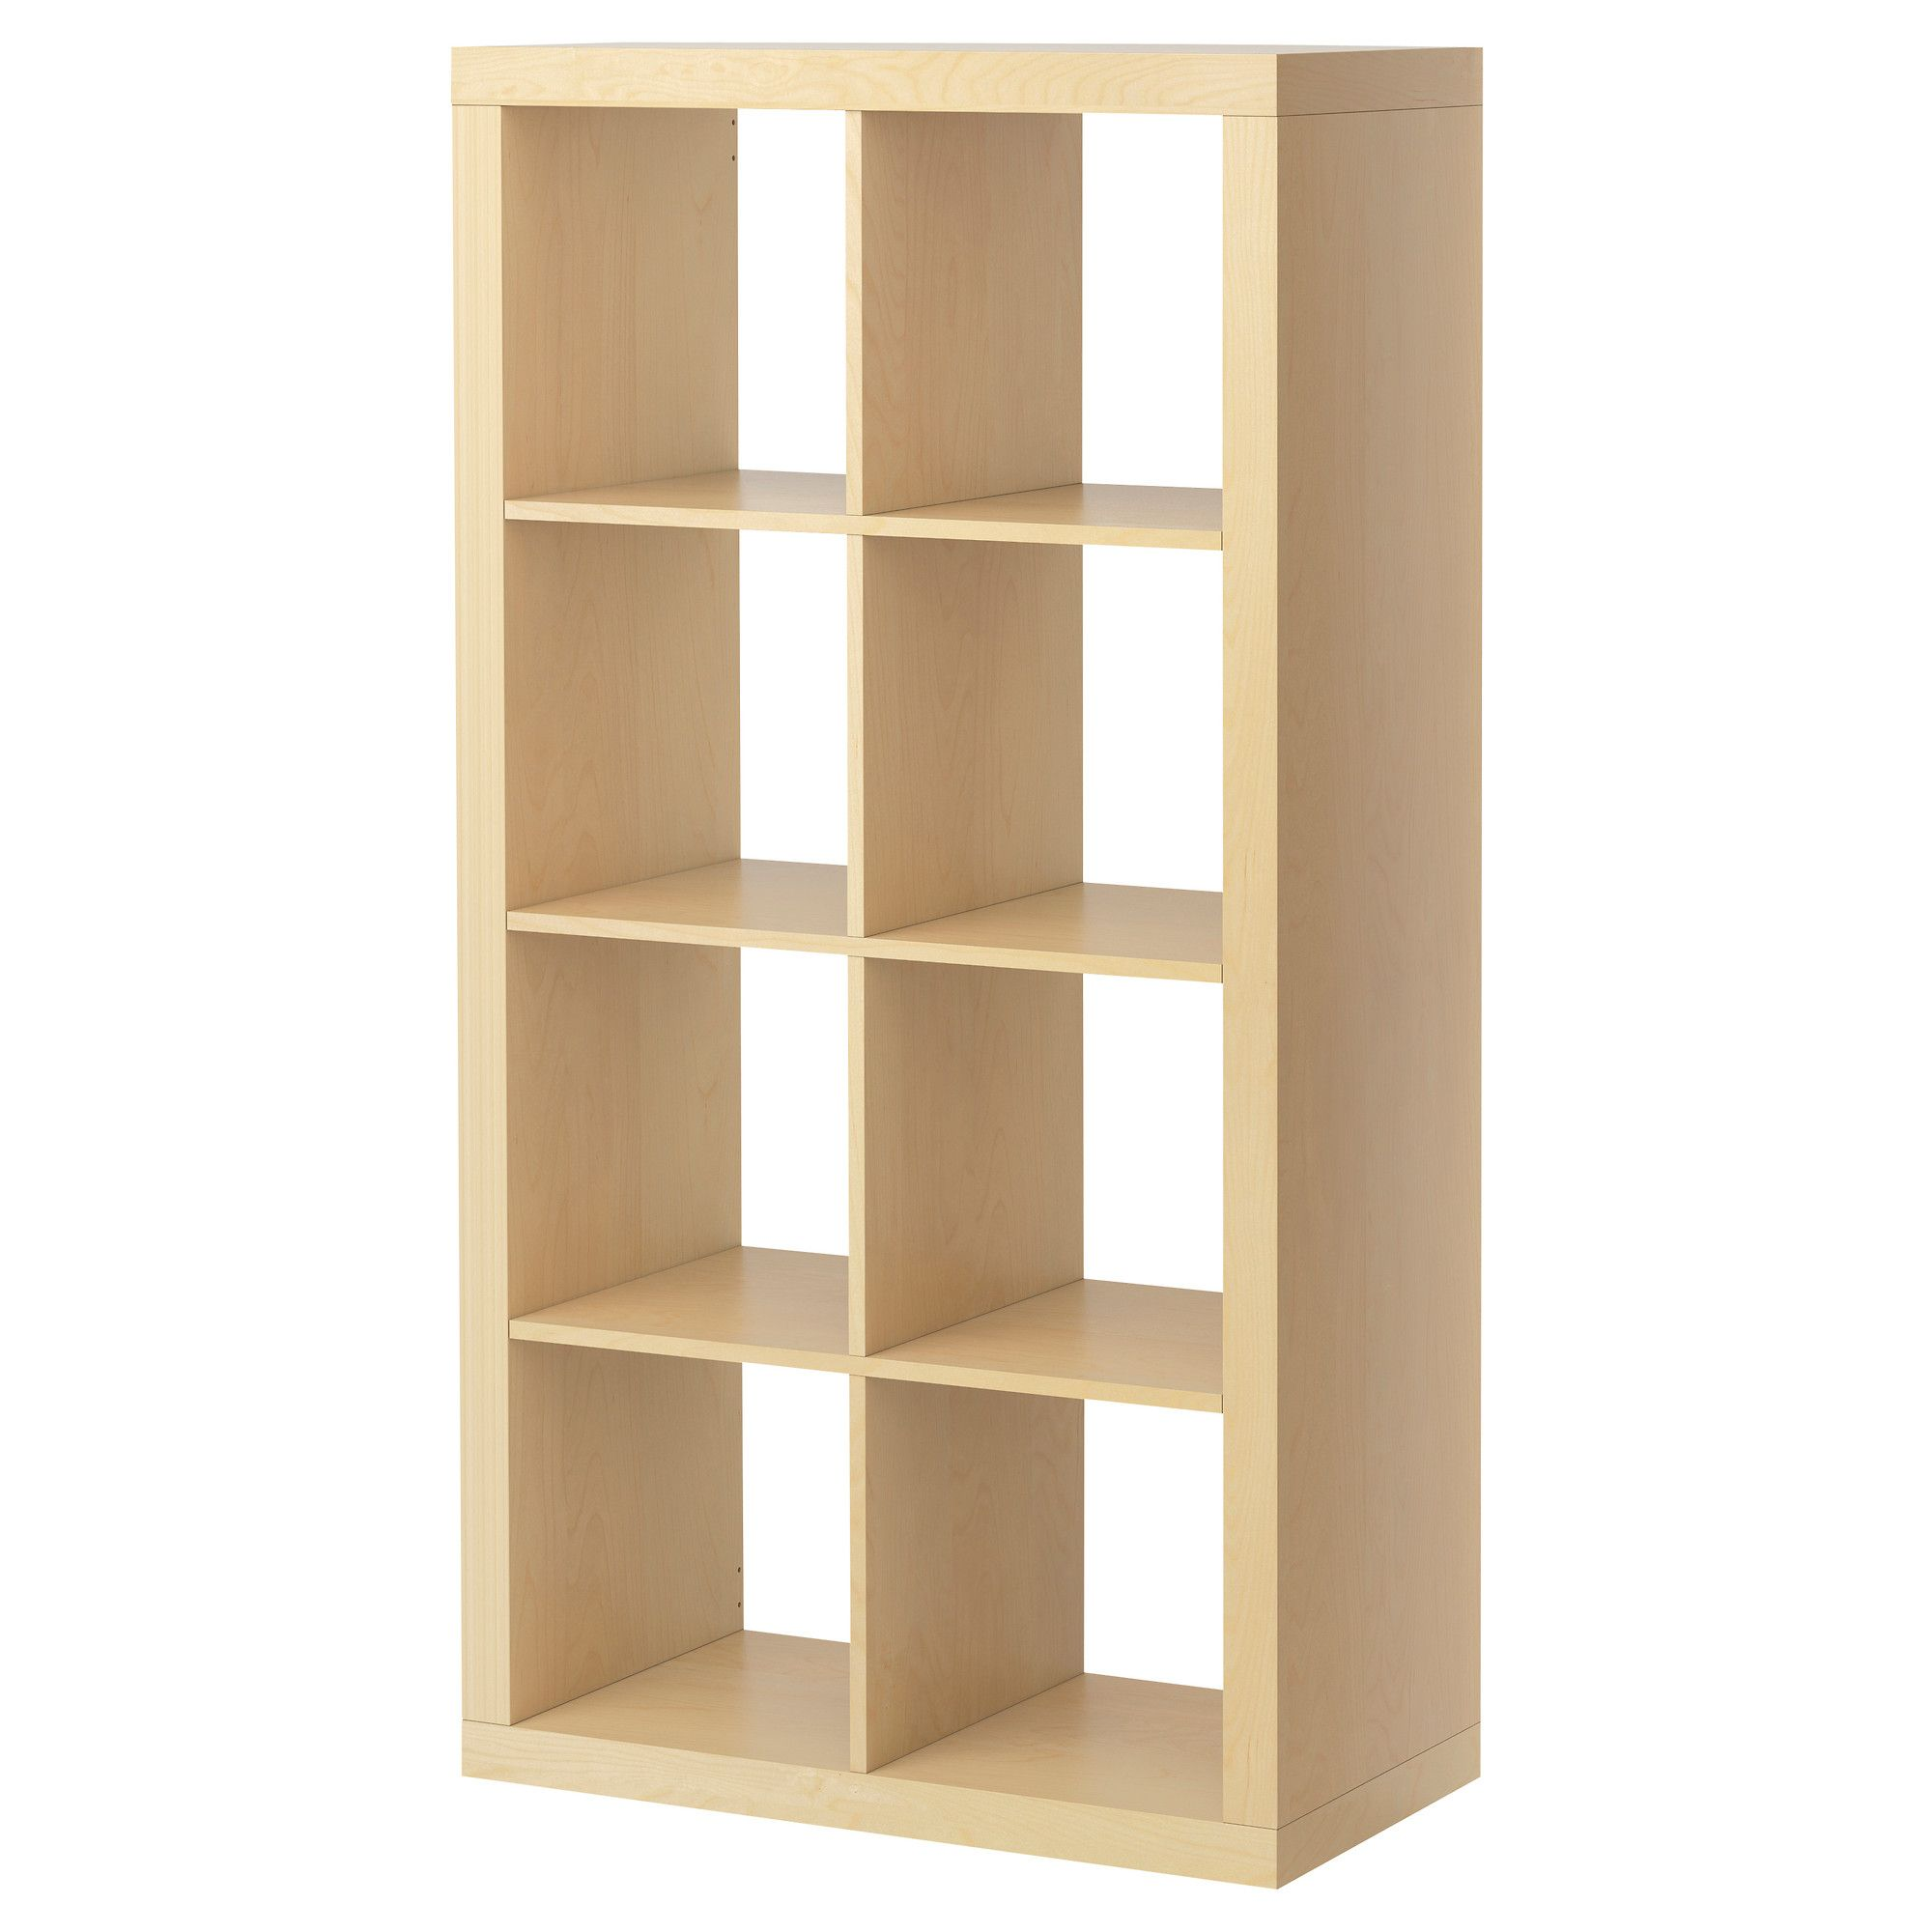 Expedit Shelving Unit 69 99 Product Dimensions Width 31 1 8 Depth 15